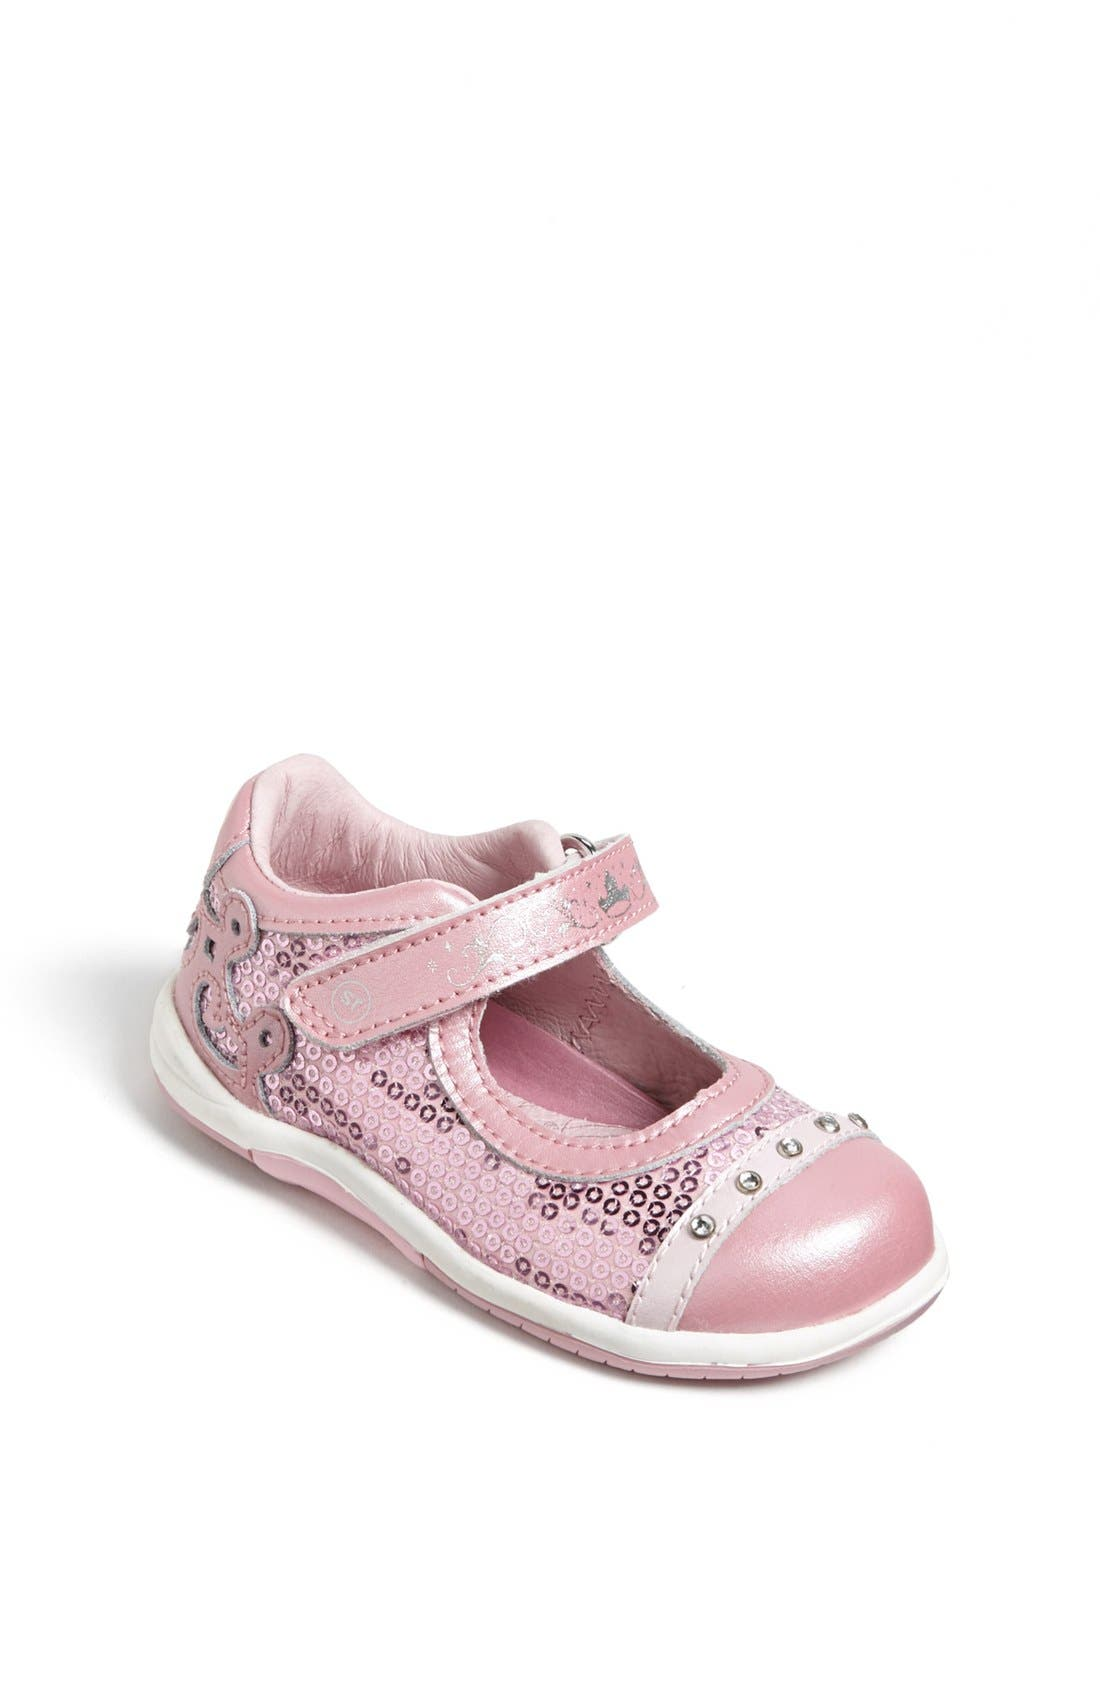 STRIDE RITE 'SRT Aurora' Mary Jane Sneaker, Main, color, 650